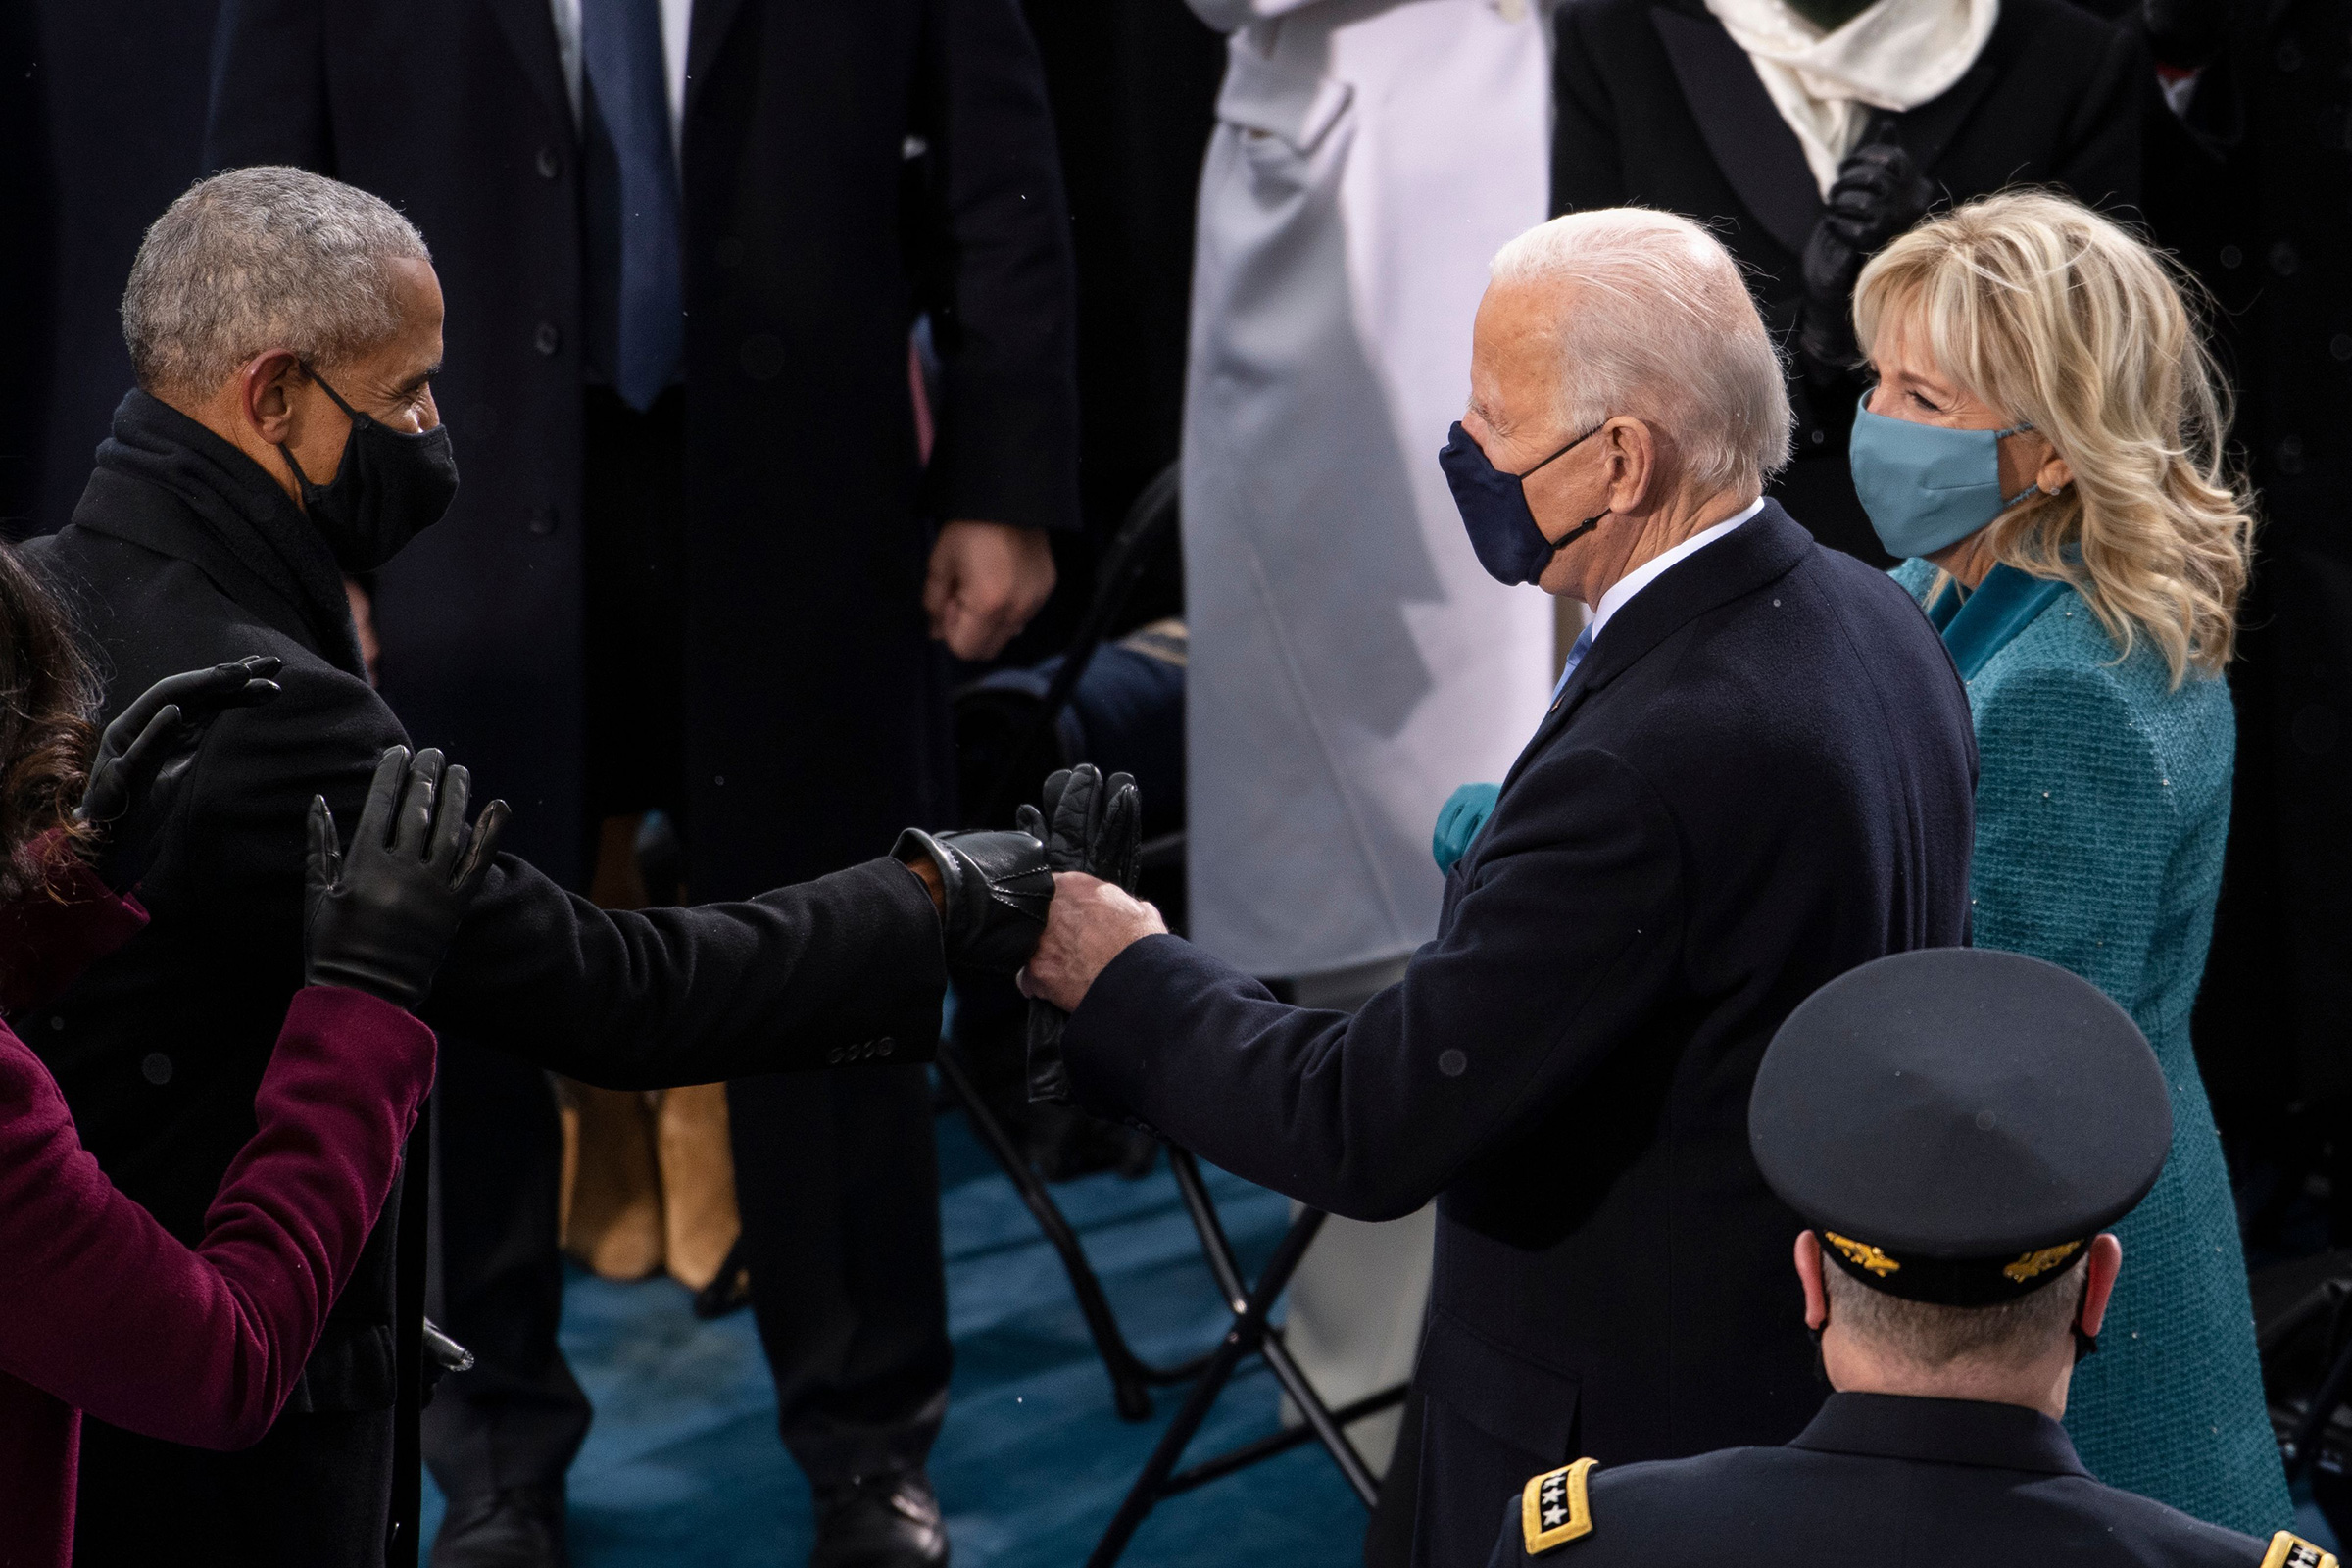 President-elect Joe Biden greets President Barack Obama as he arrives to the West Front of the Capitol.